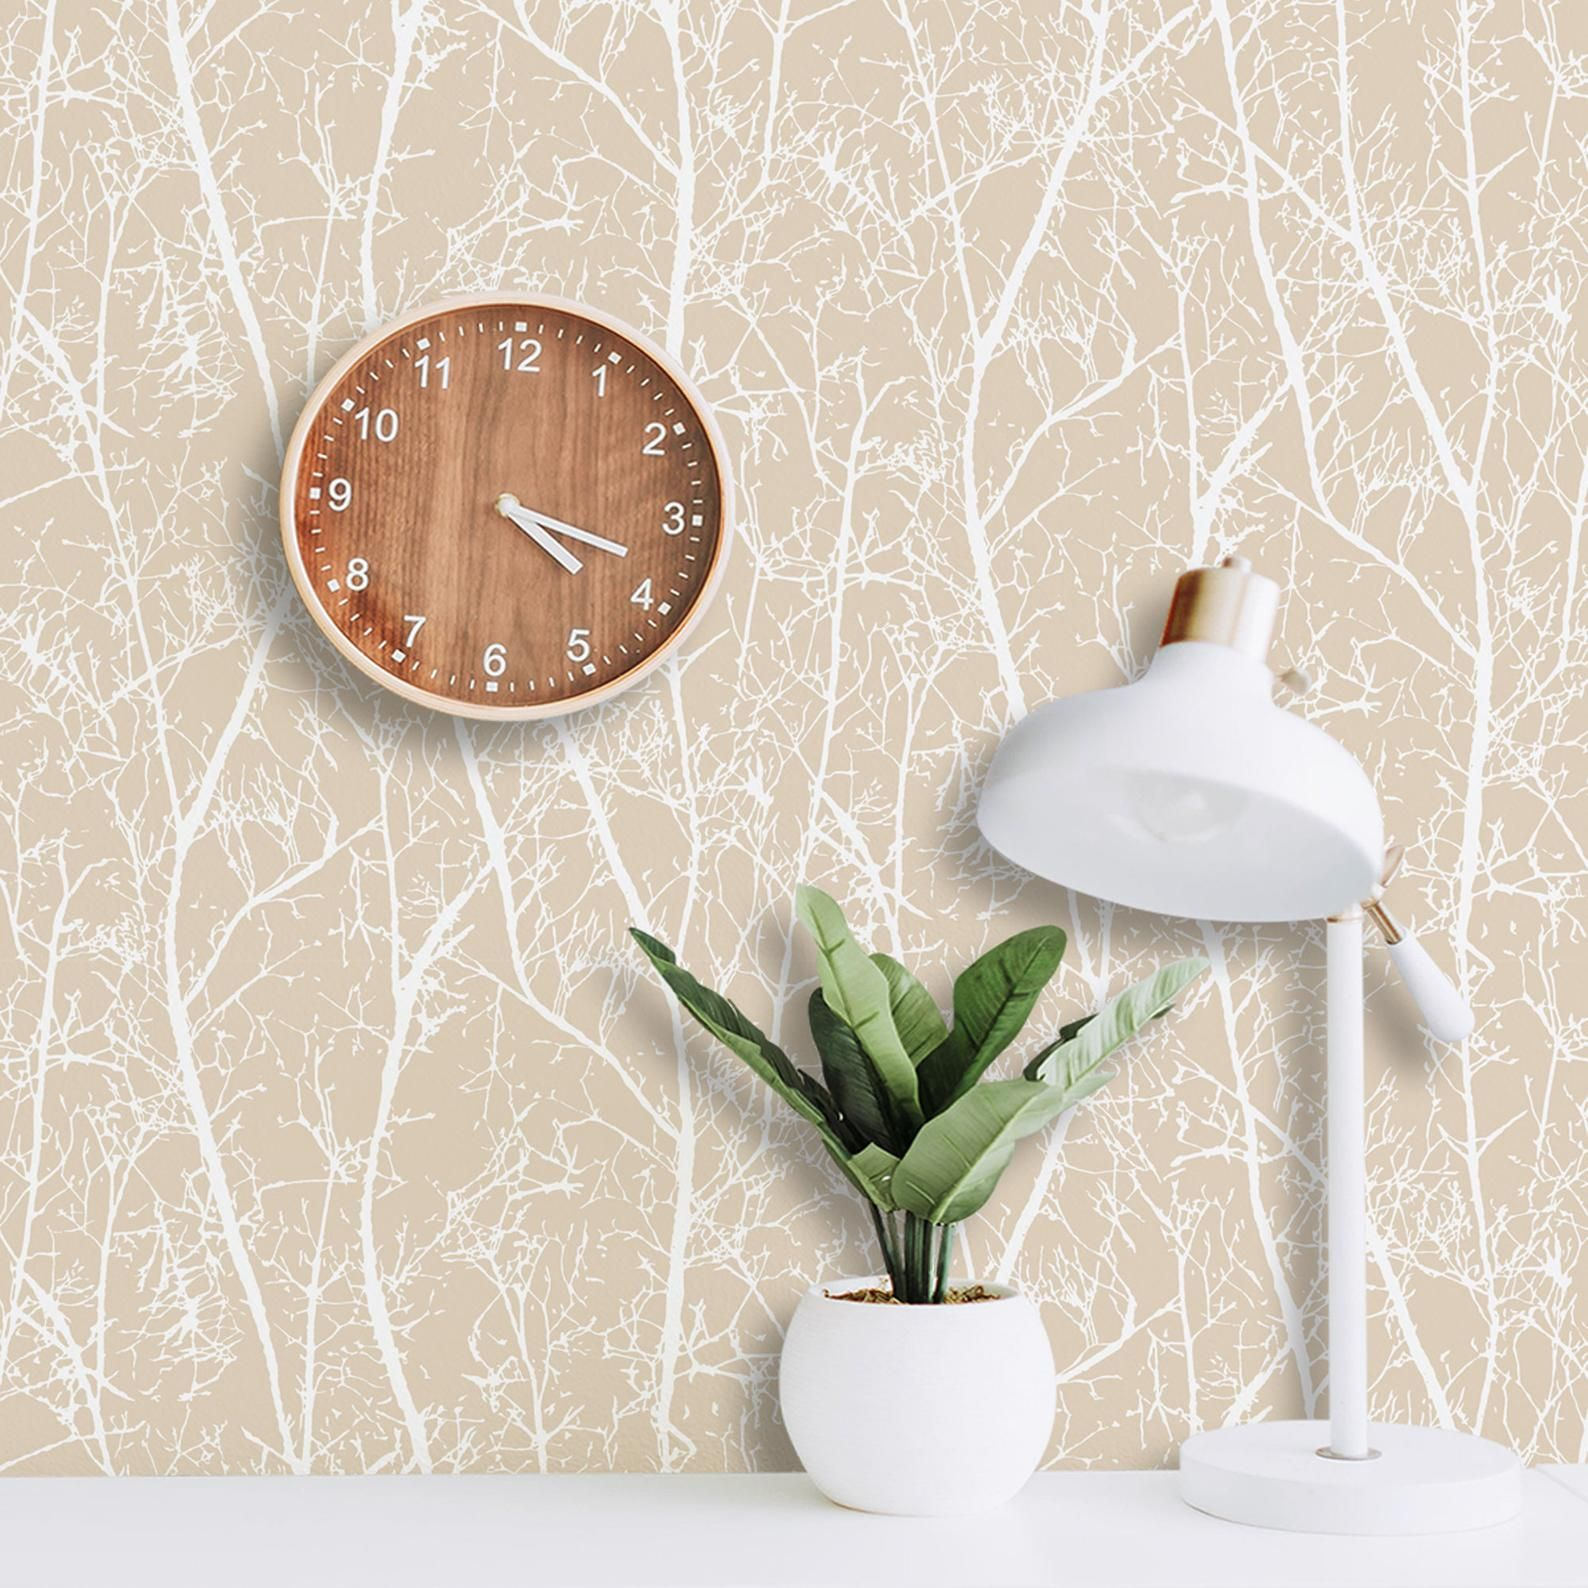 Sussexhome Non Woven Removable Wallpaper Waterproof Etsy Removable Wallpaper How To Install Wallpaper Modern Wallpaper